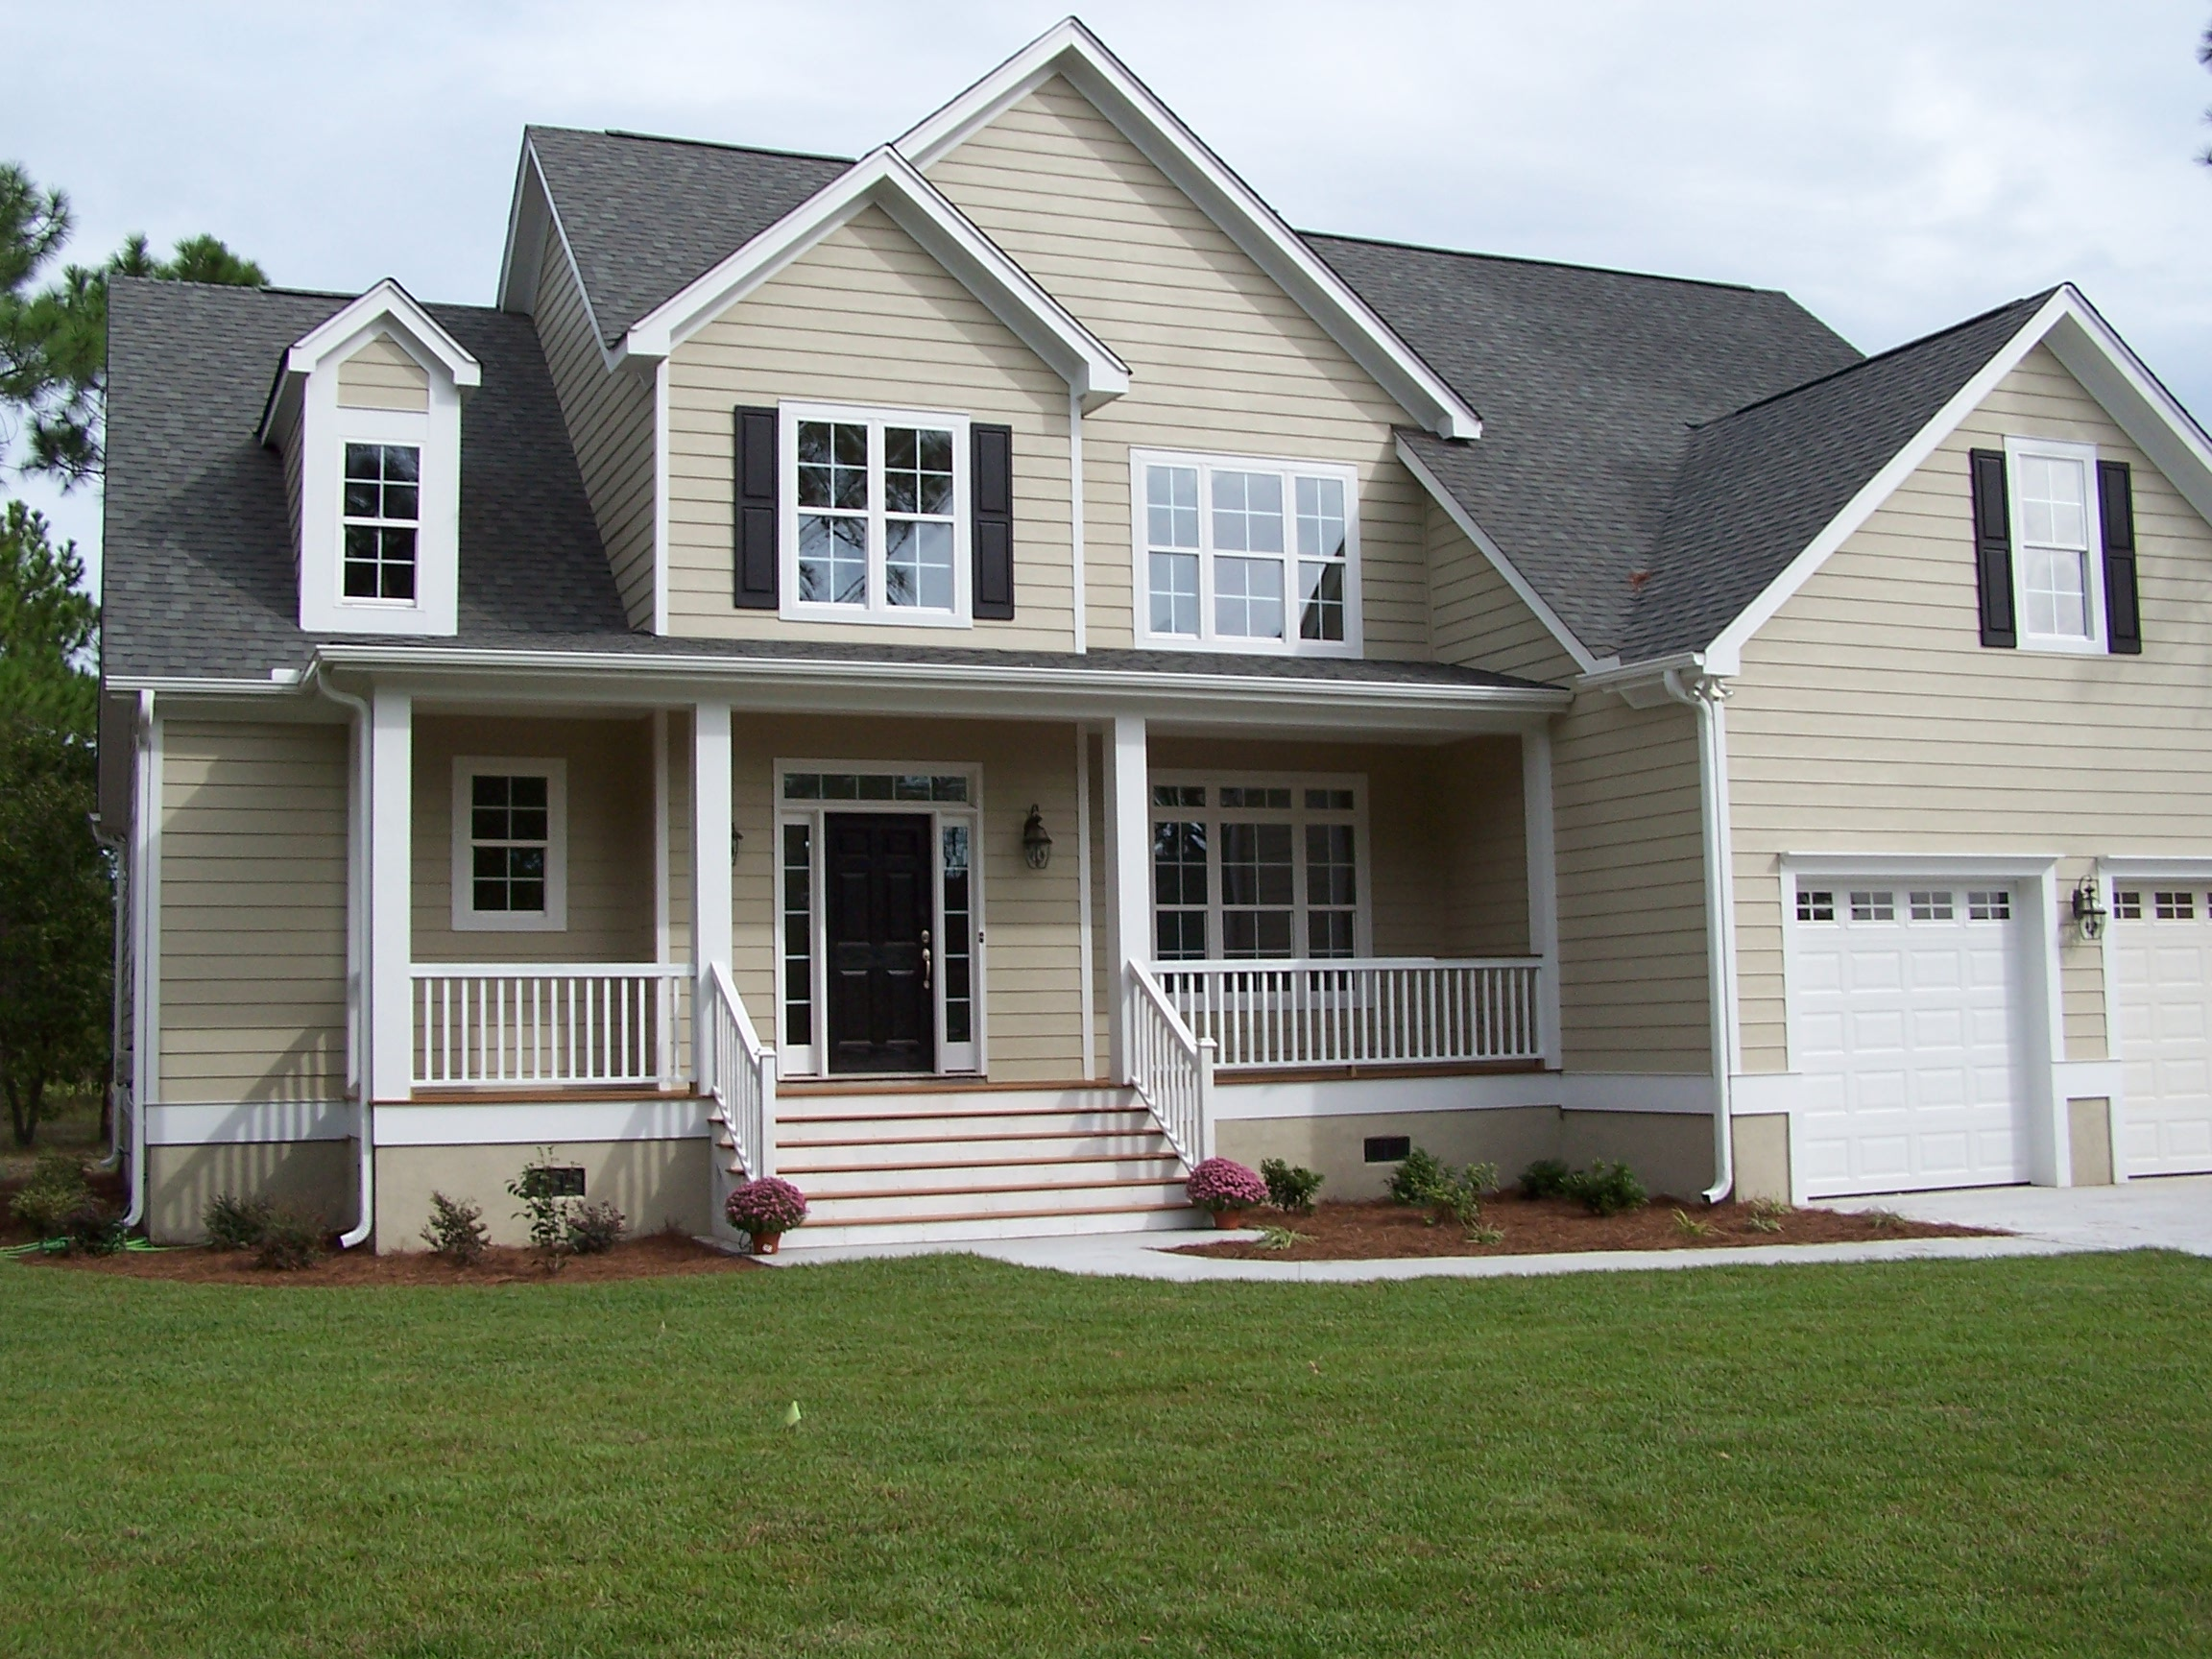 Hudson Home Builders Inc Home Builder St James Plantation Brunswick County North Carolina Nc